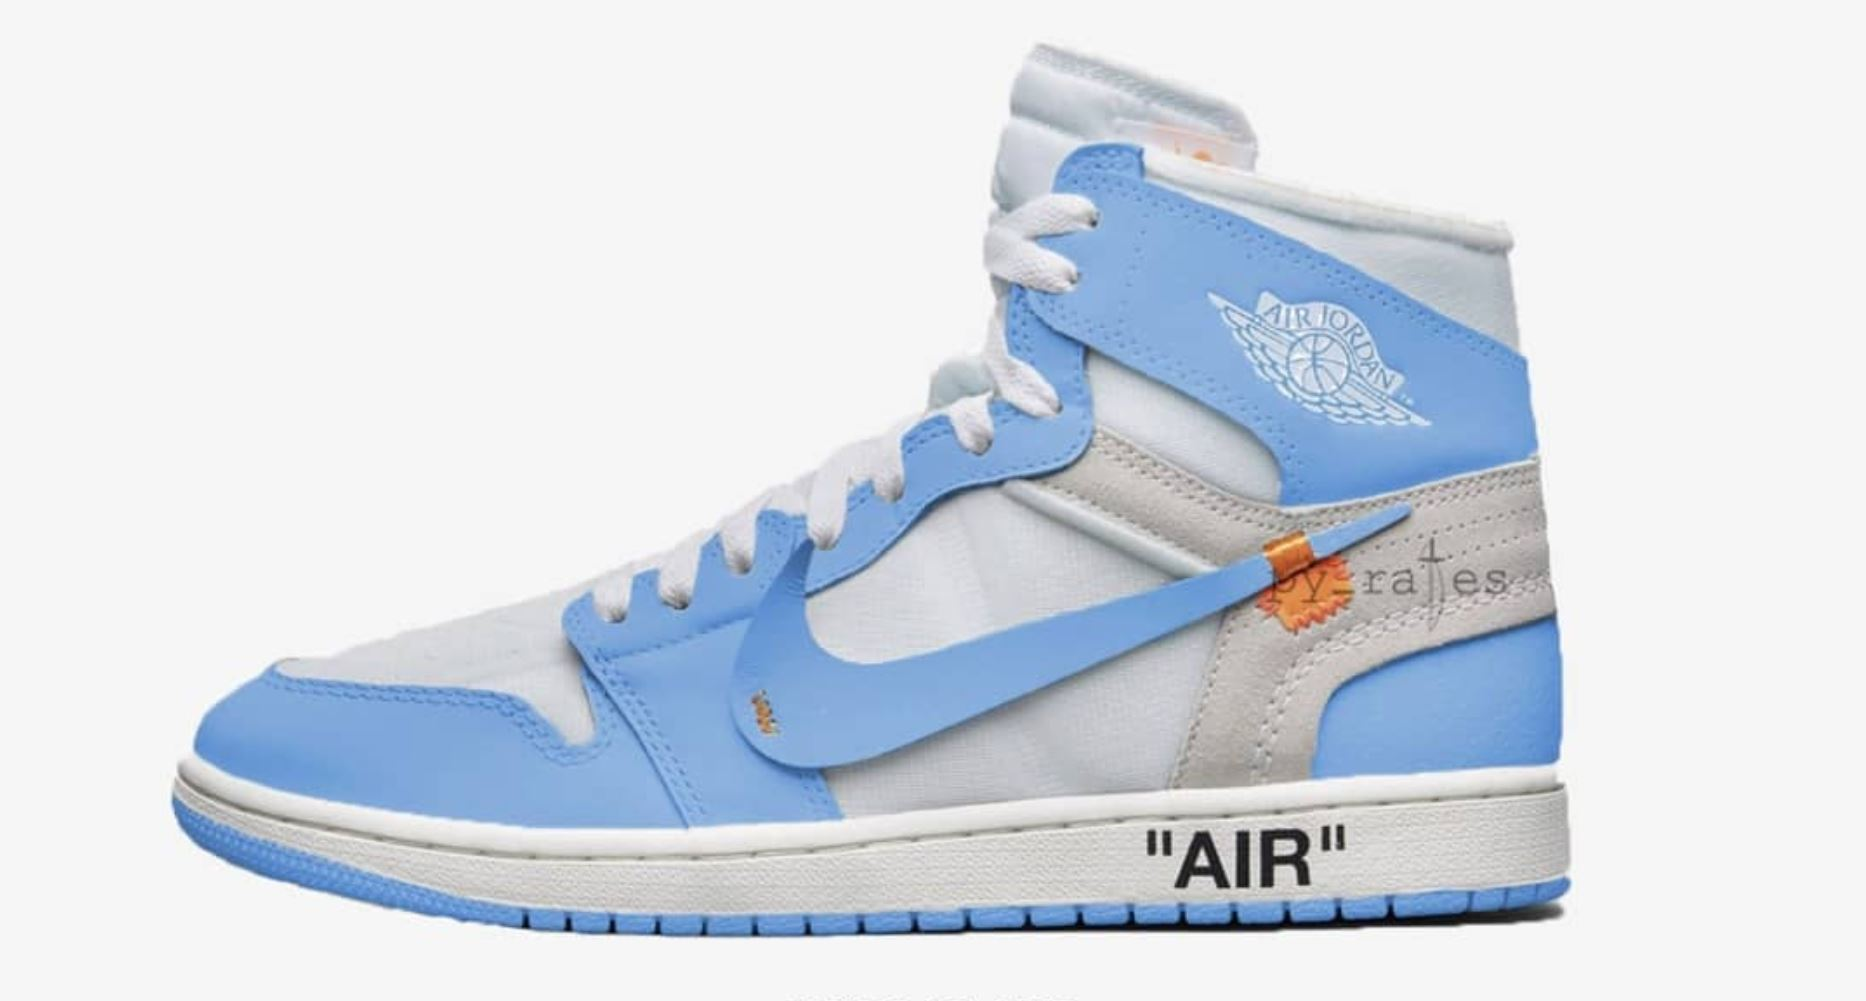 off white air jordan 1 unc release date